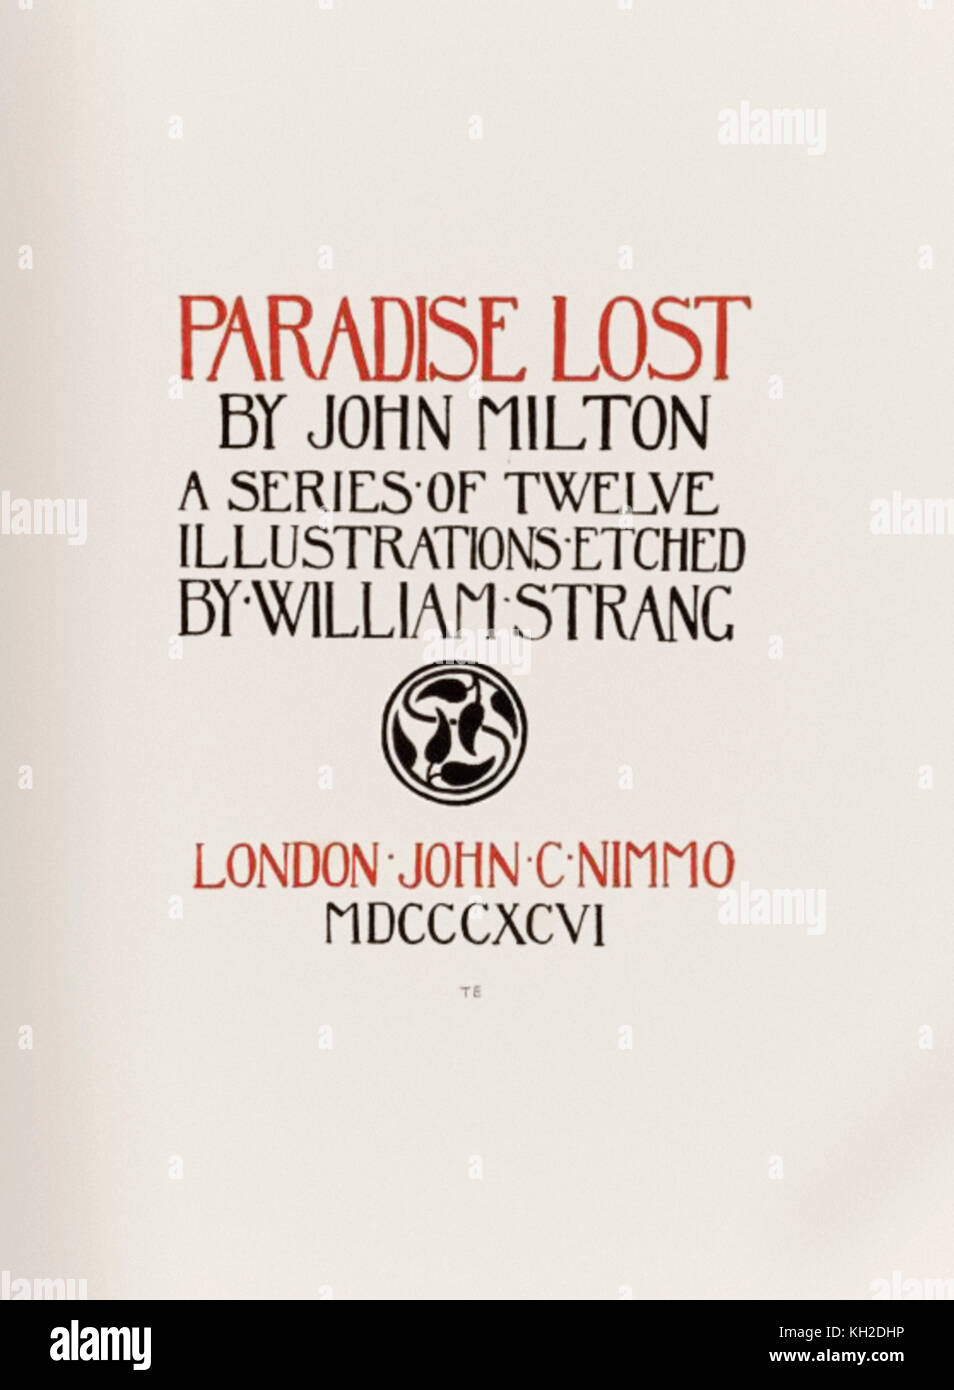 john milton 1608 1674 paradise lost Paradise lost (books i and ii) [john milton 1608-1674] on amazoncom free shipping on qualifying offers this reproduction was printed from a digital file created at the library of congress as part of an extensive scanning effort started with a generous donation from the alfred p sloan.